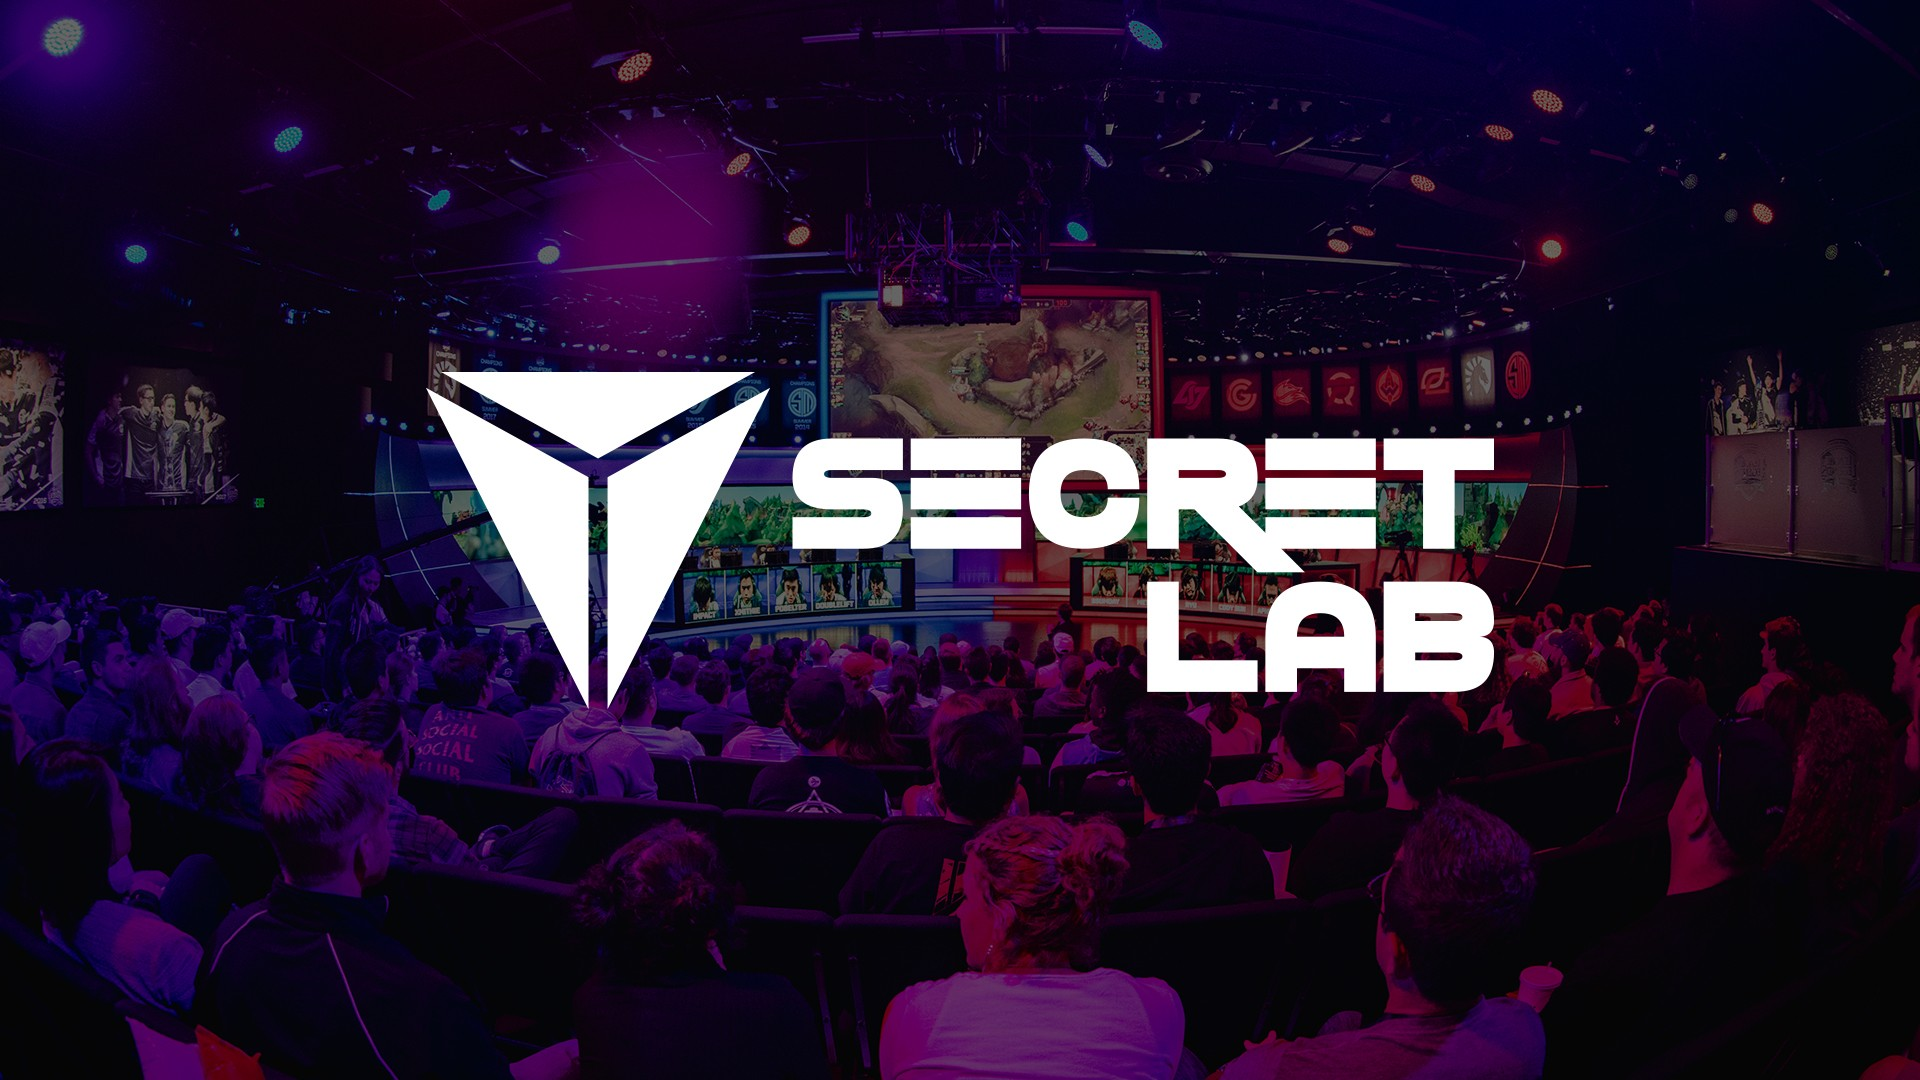 lcs gaming chair wood child rocking secretlab partners with league of legends esports inven global in joining alienware and mastercard as a riot games partner will be the official provider for addition to domestic partnership